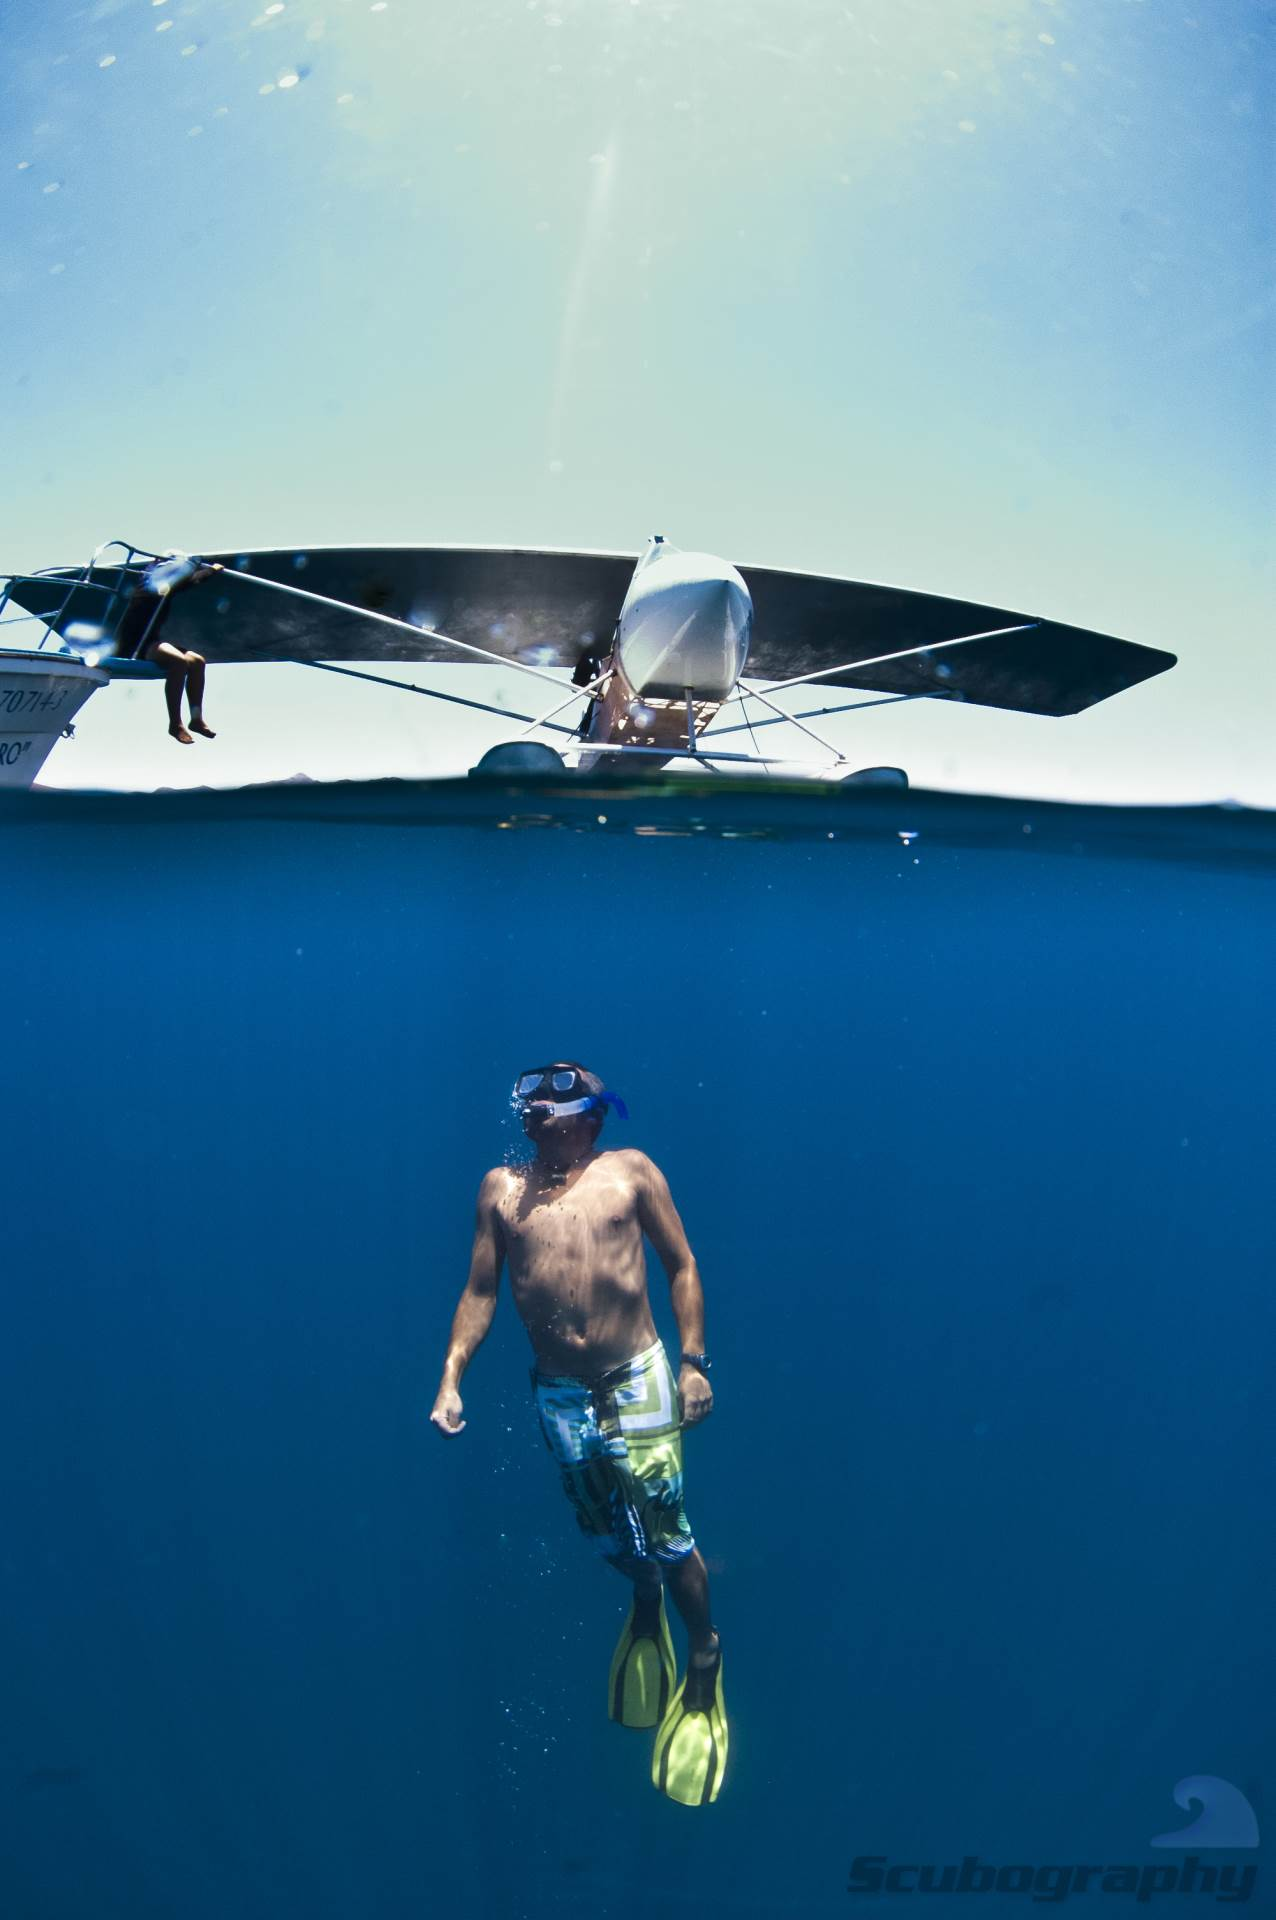 The pilot of our whale shark spotter plane cooling off in the afternoon.